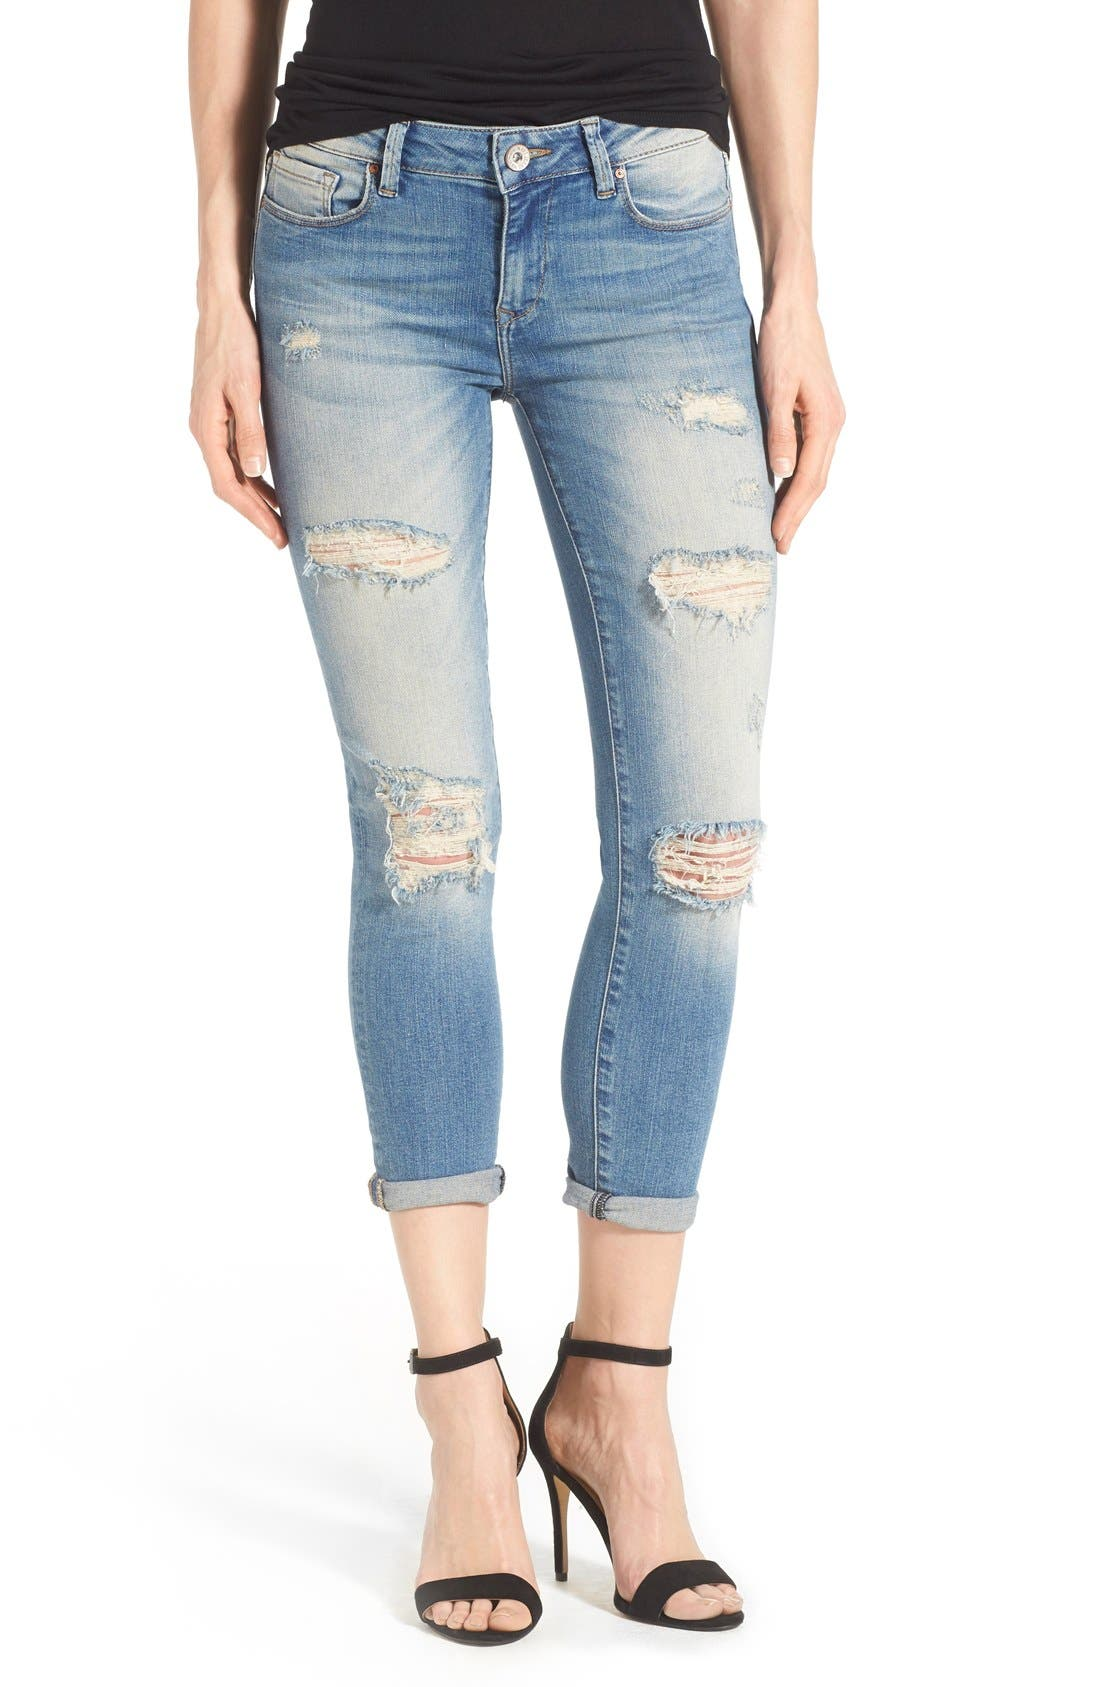 Alternate Image 1 Selected - Mavi Jeans 'Ada' Destroyed Stretch Boyfriend Jeans (Ripped Vintage)